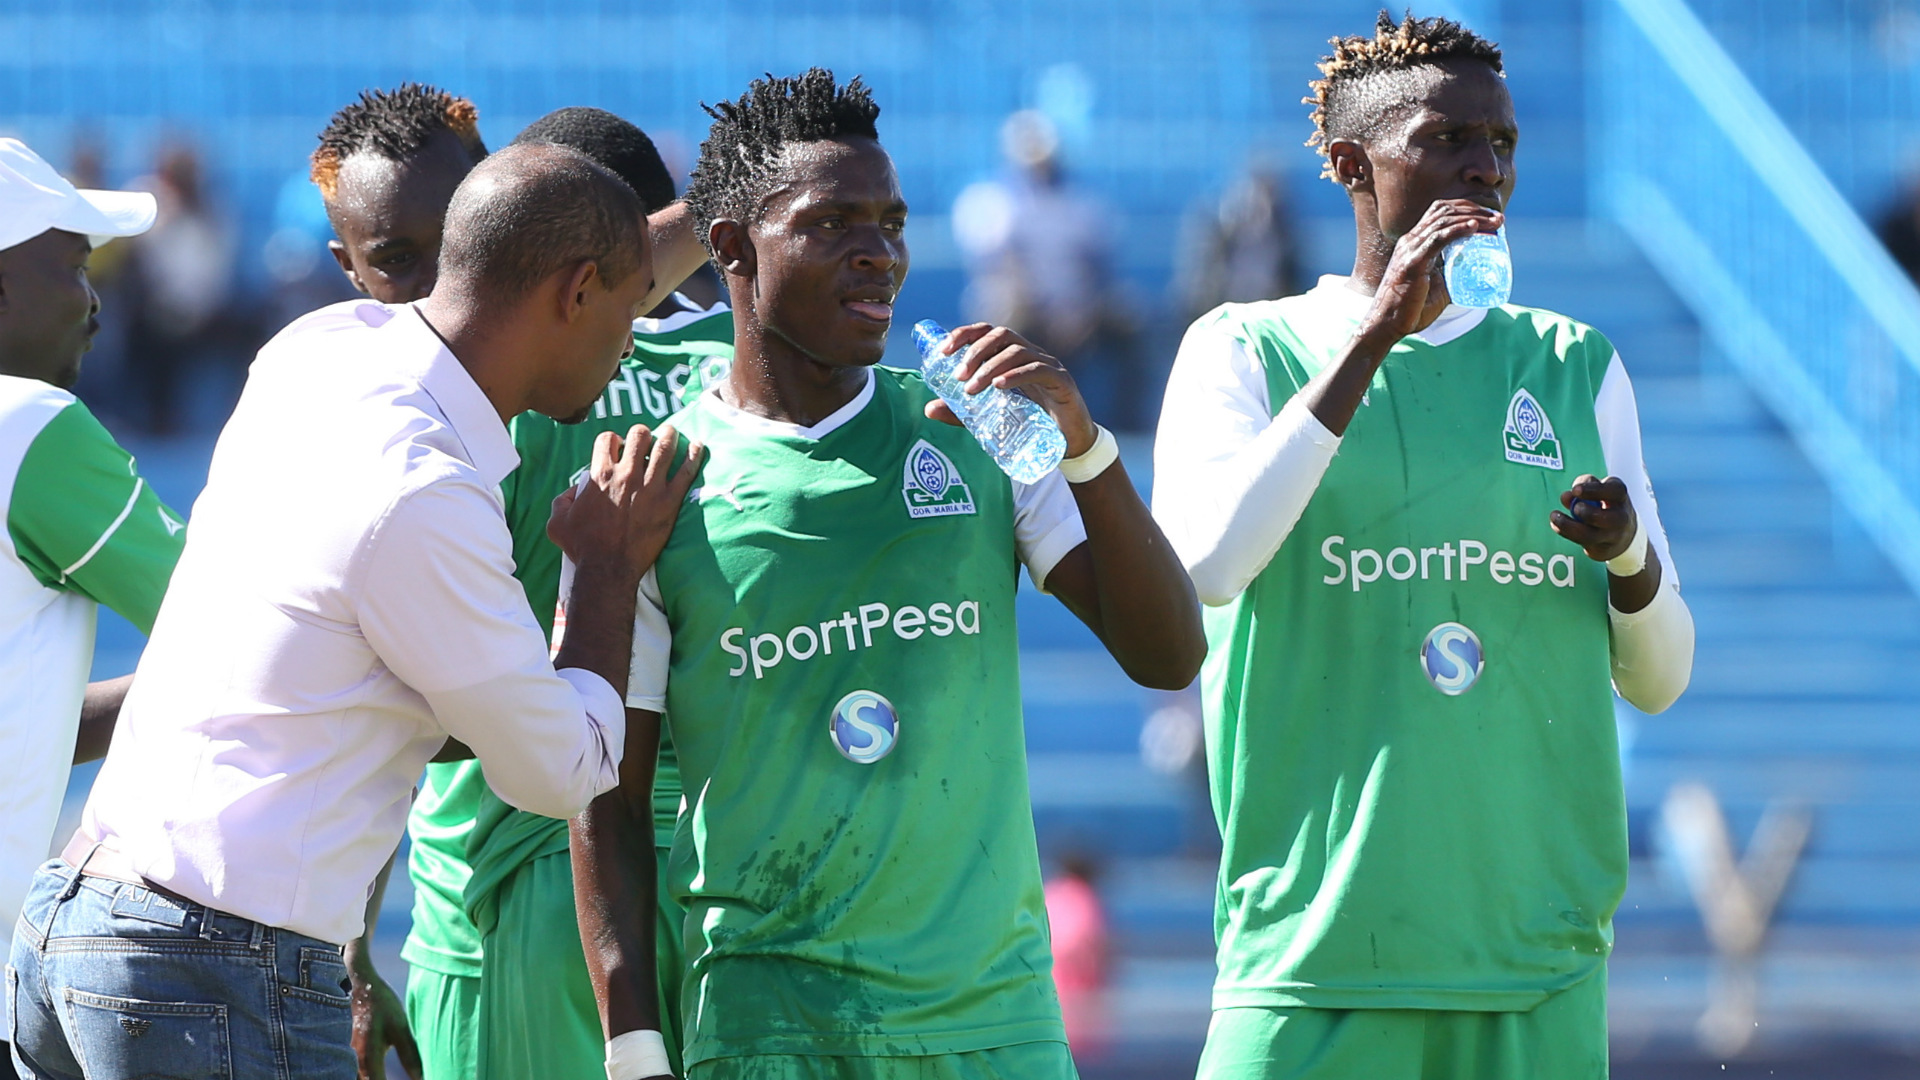 Gor Mahia coach Ze Maria instructs Kenneth Muguna and George Odhiambo